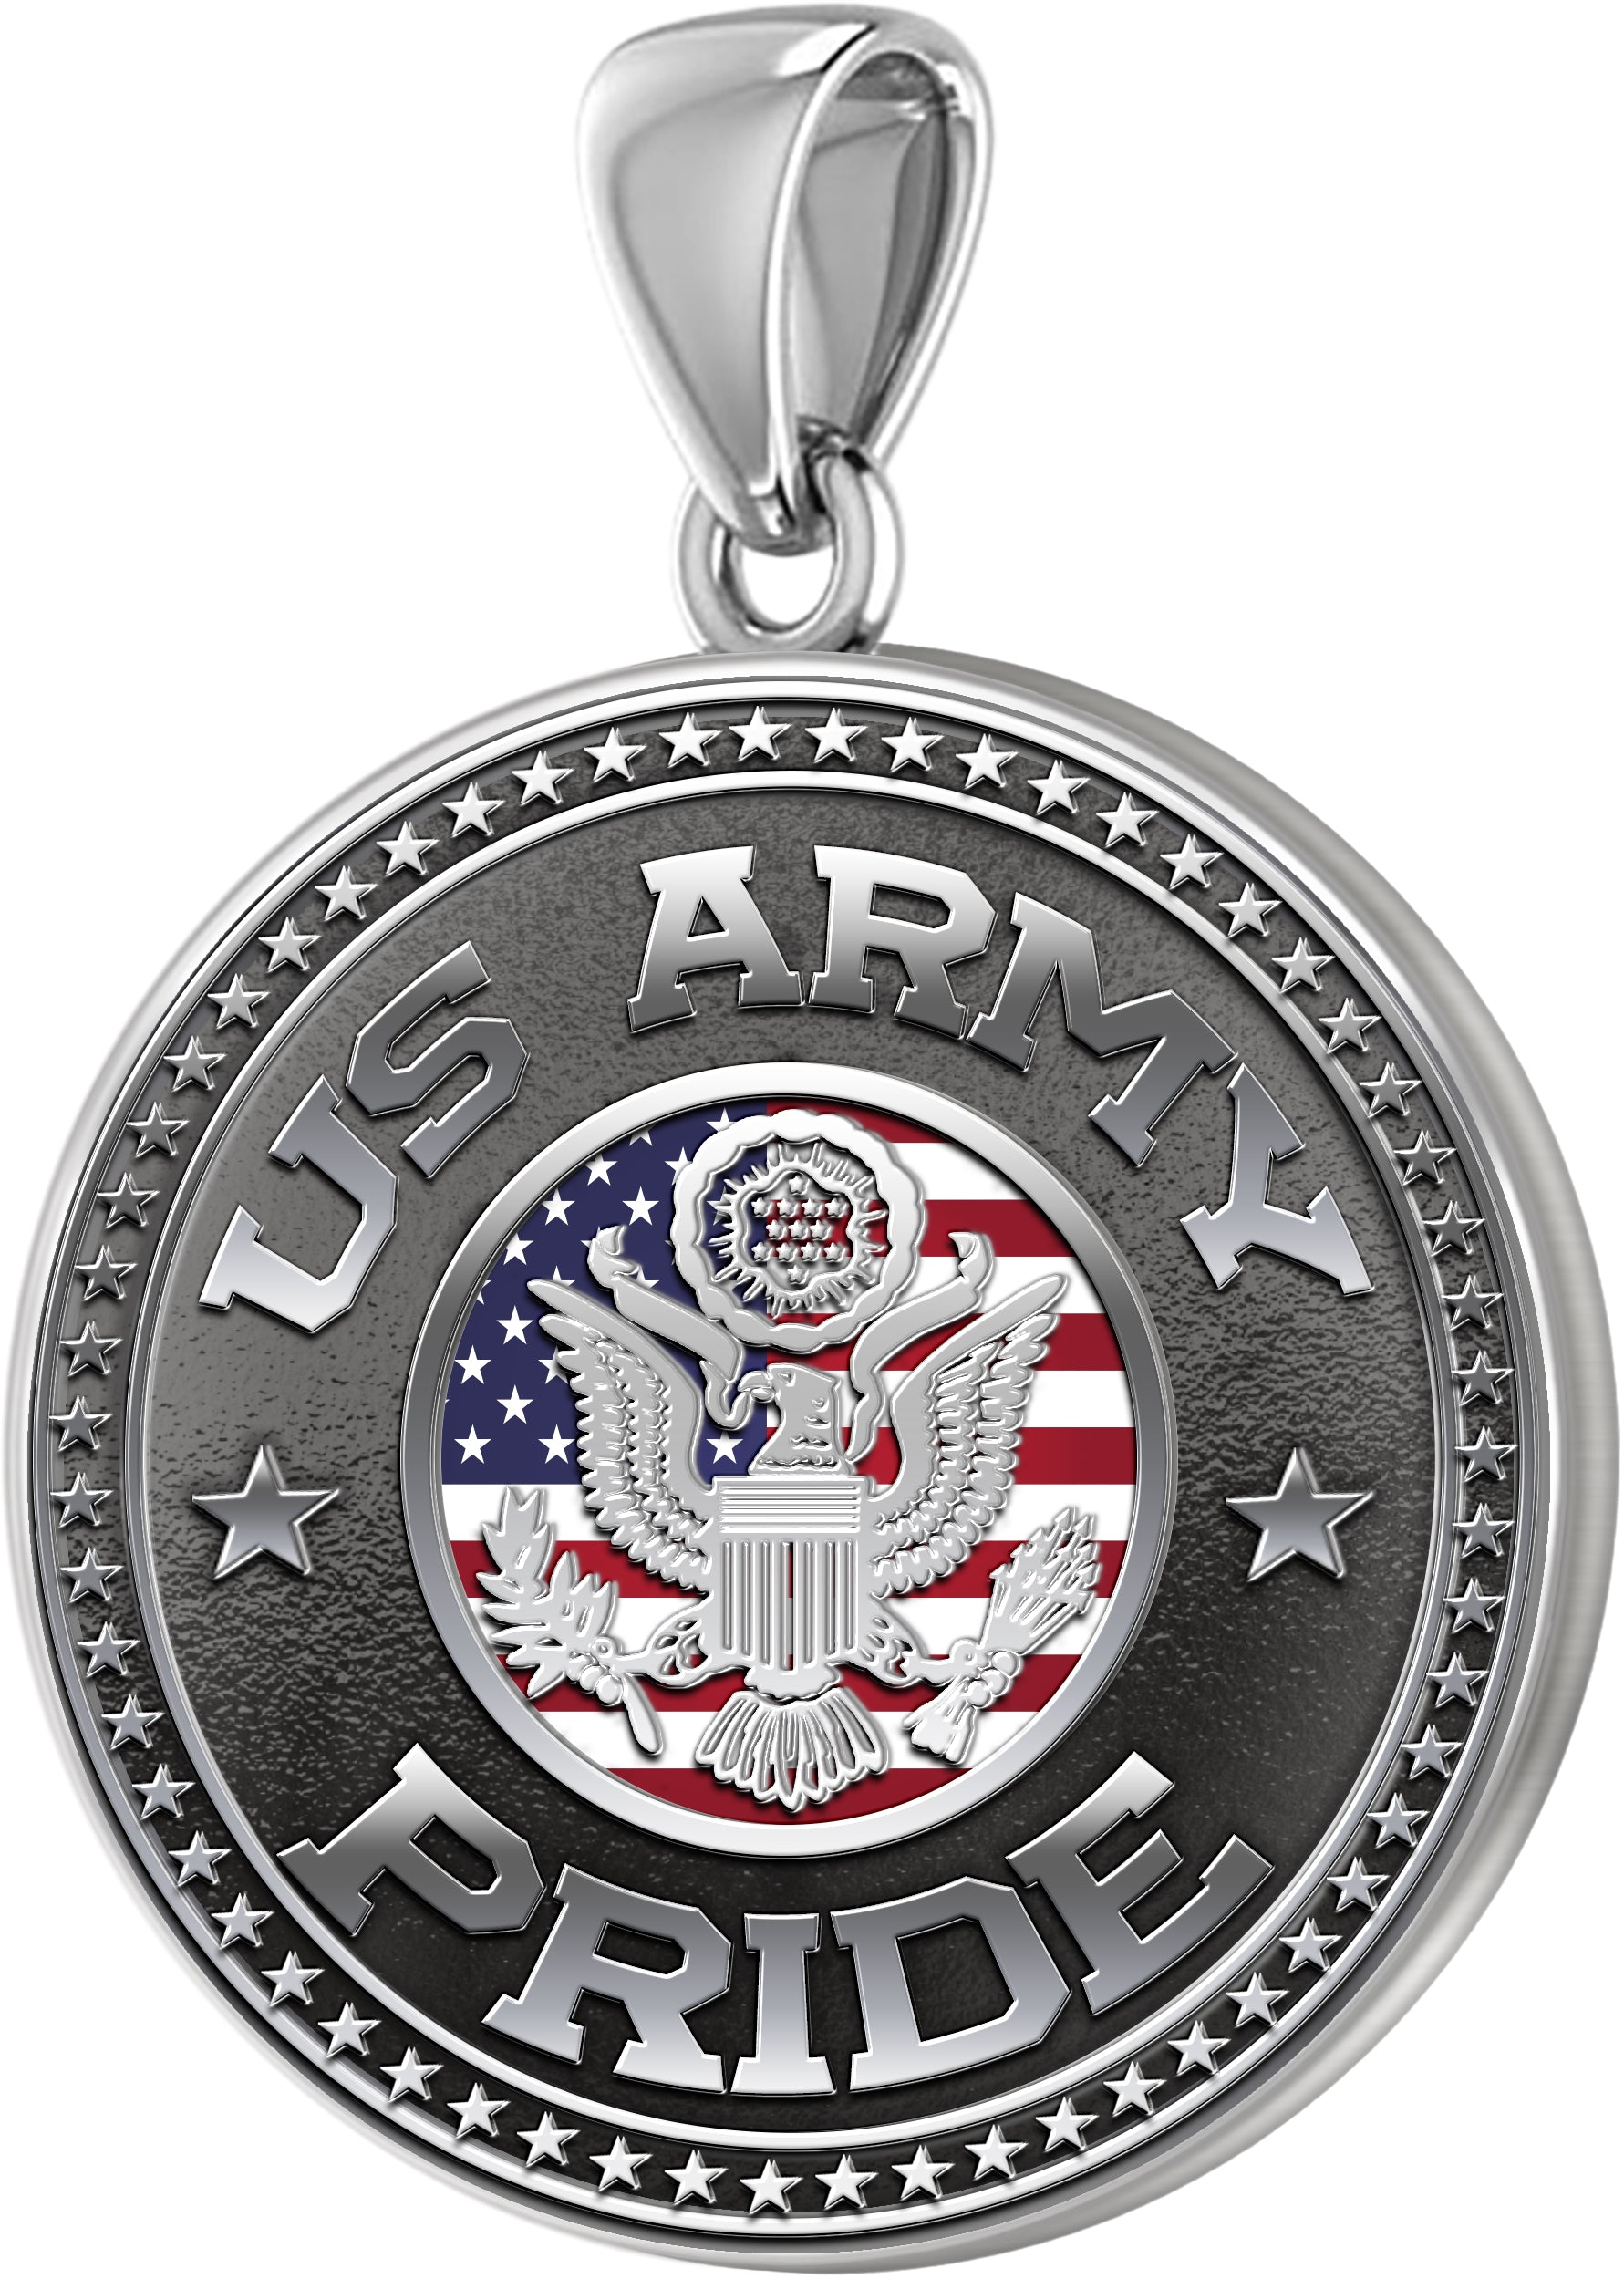 Army Pendant - Men's US Army Pride Medal